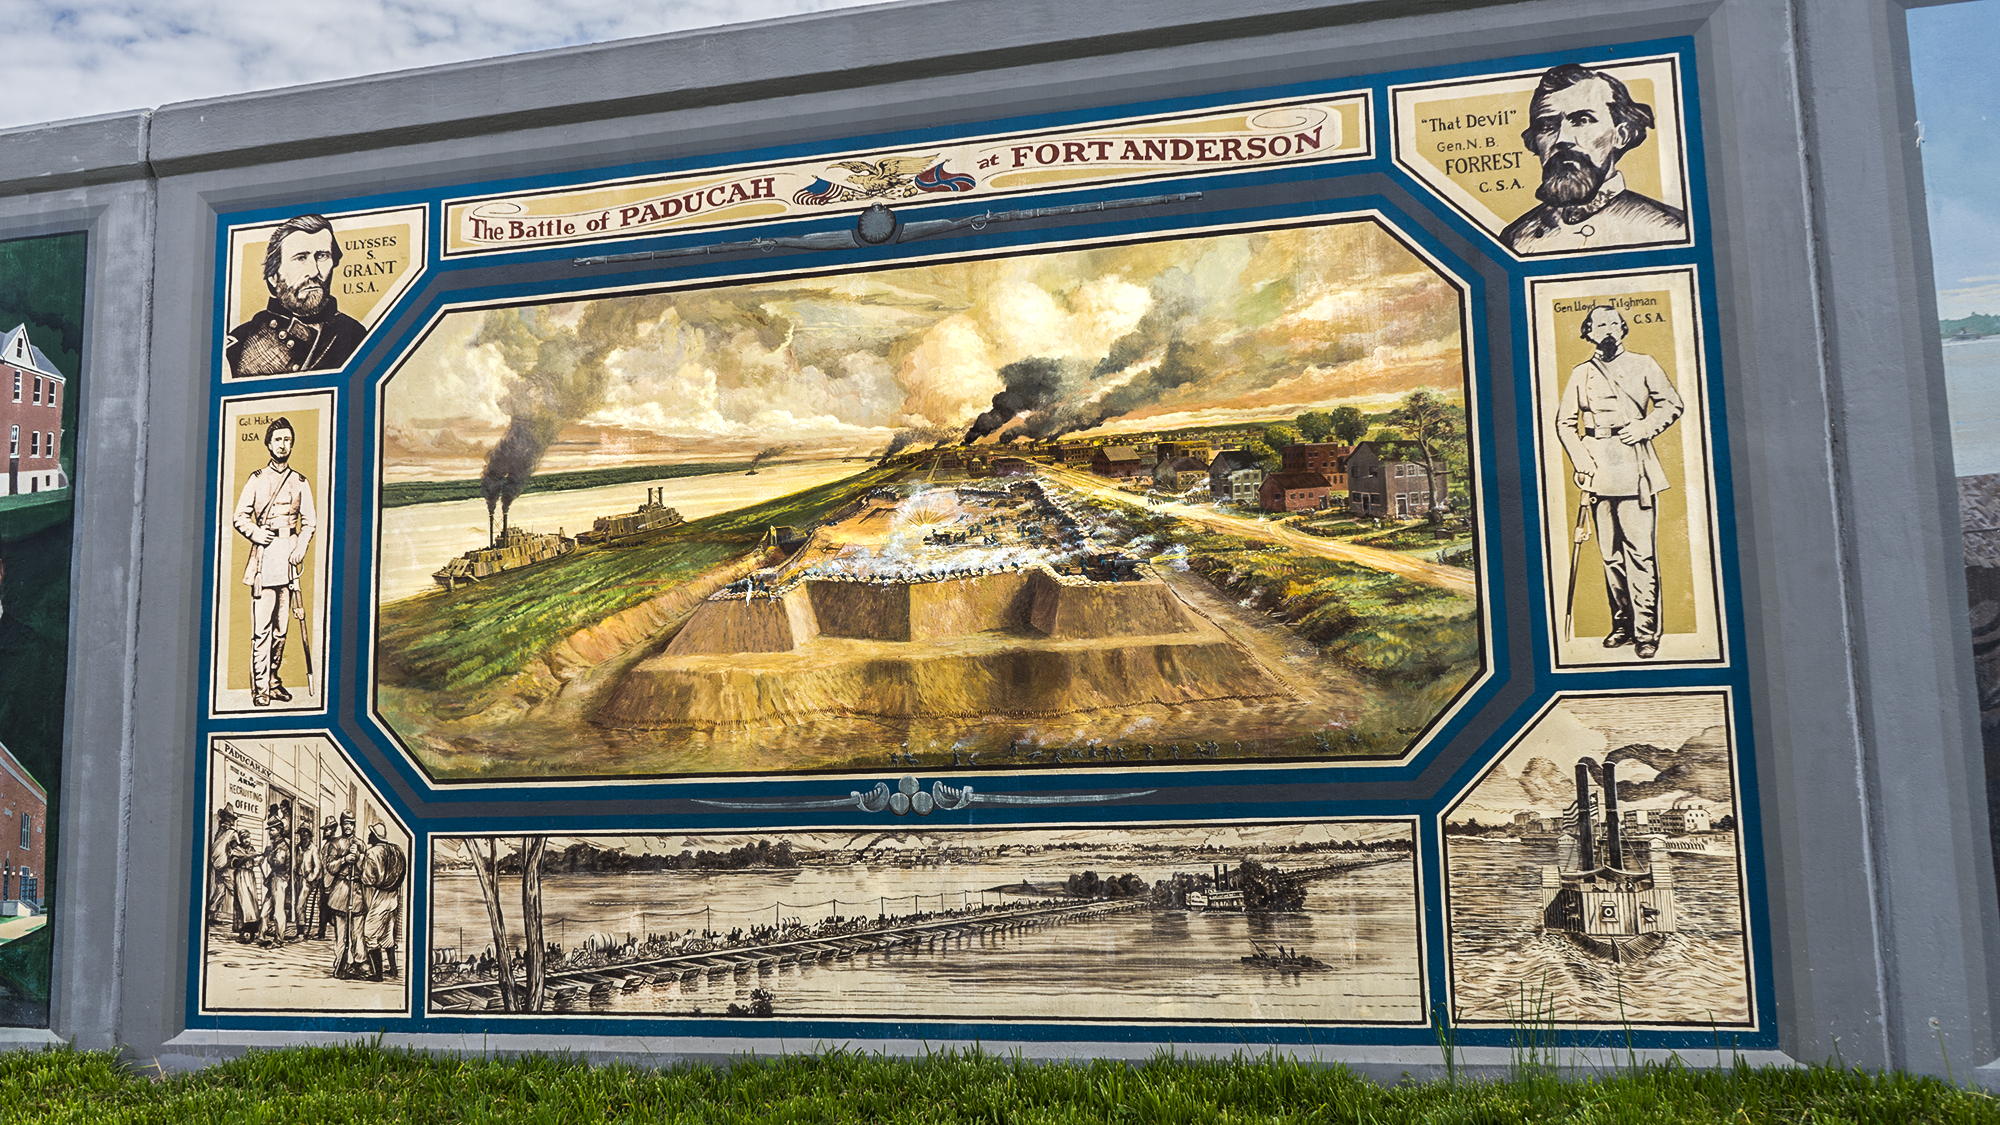 The city's flood wall murals include a history of the battle.